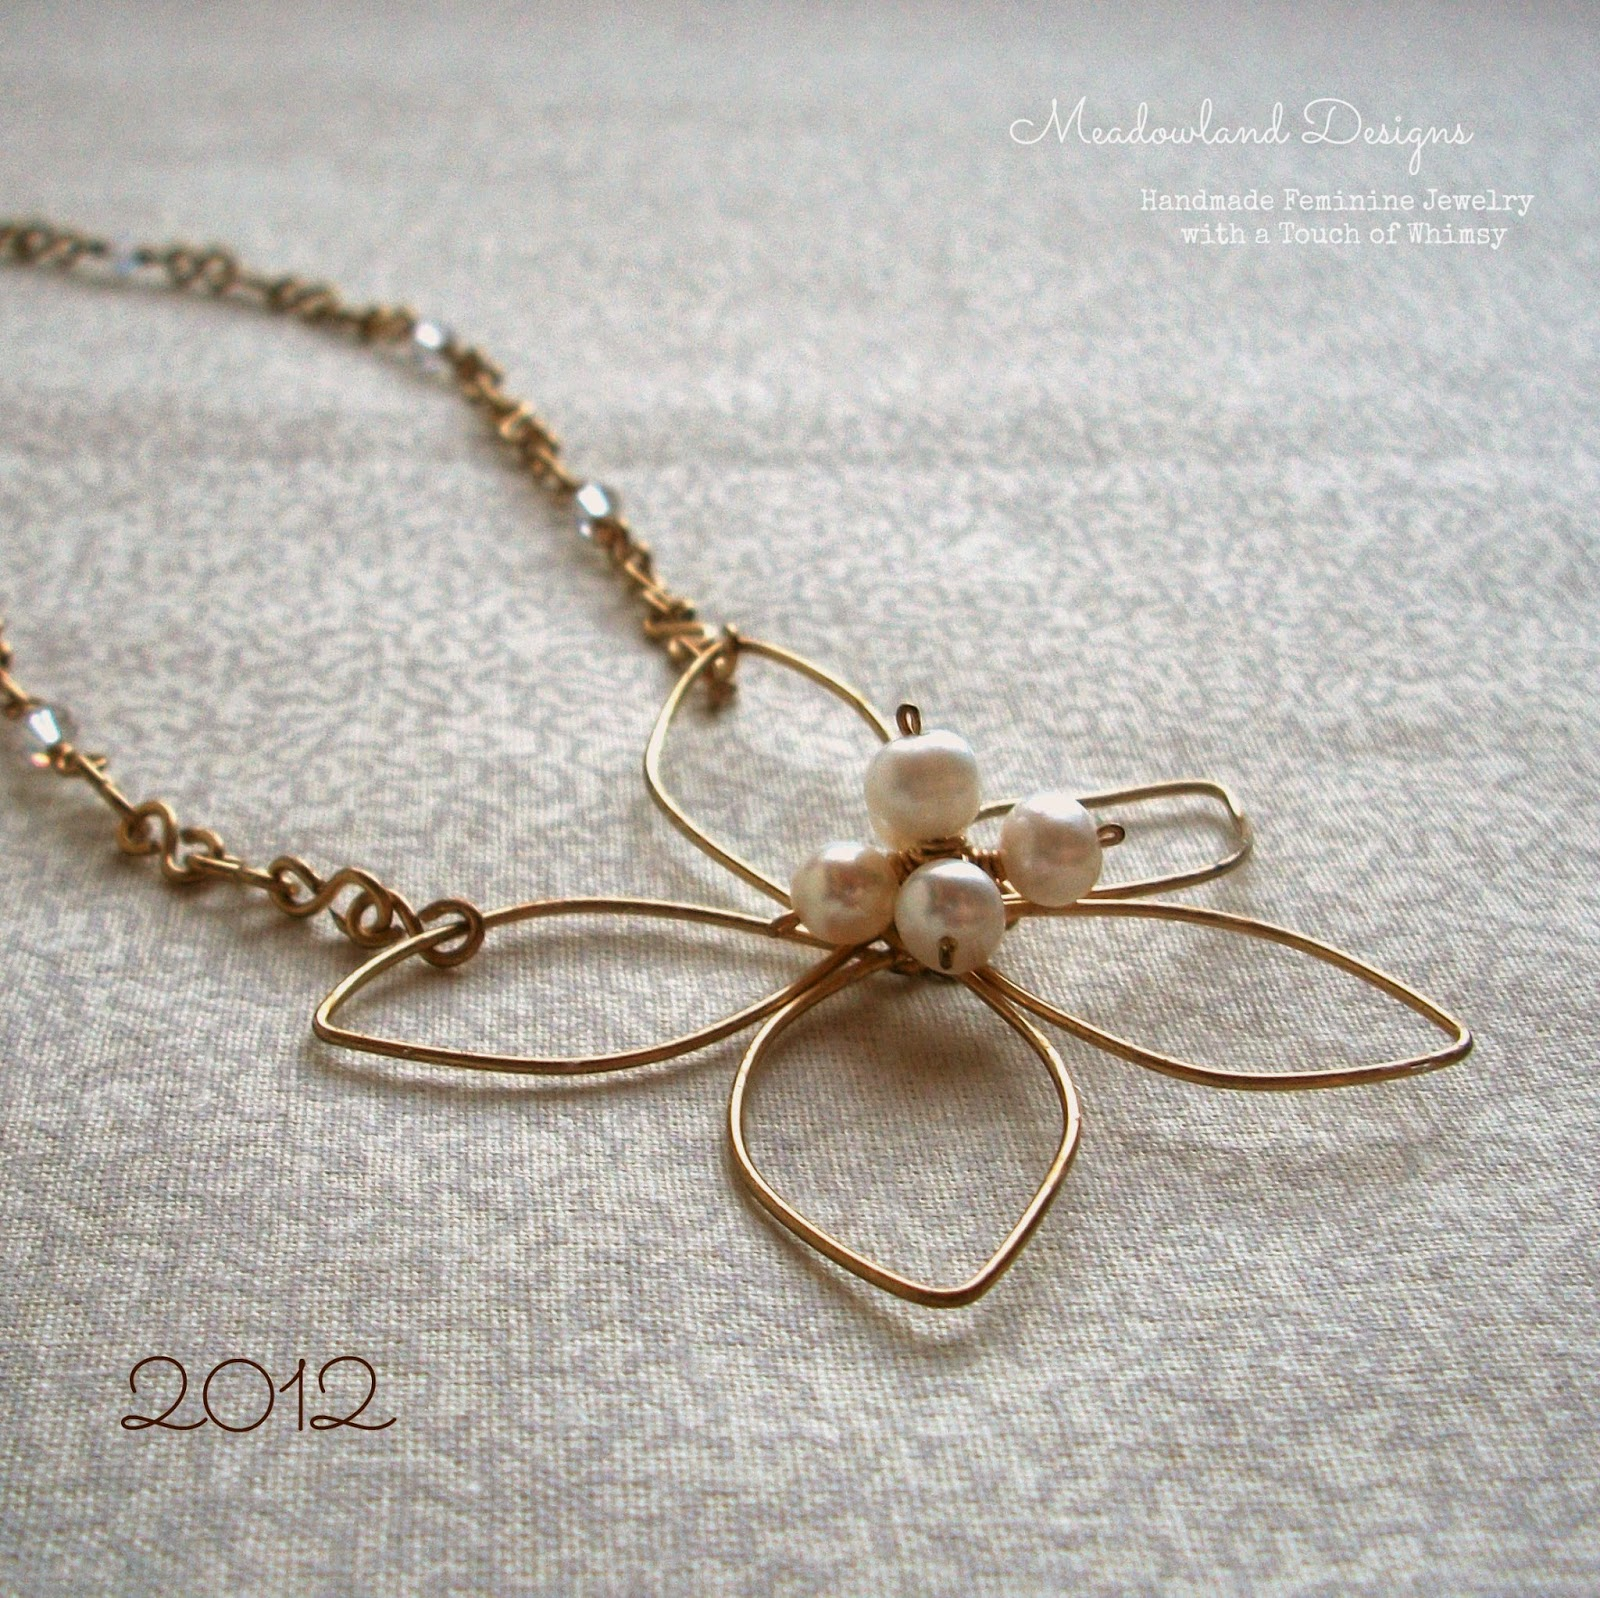 Pearl Flower Wirework Necklace with crystals, 2012